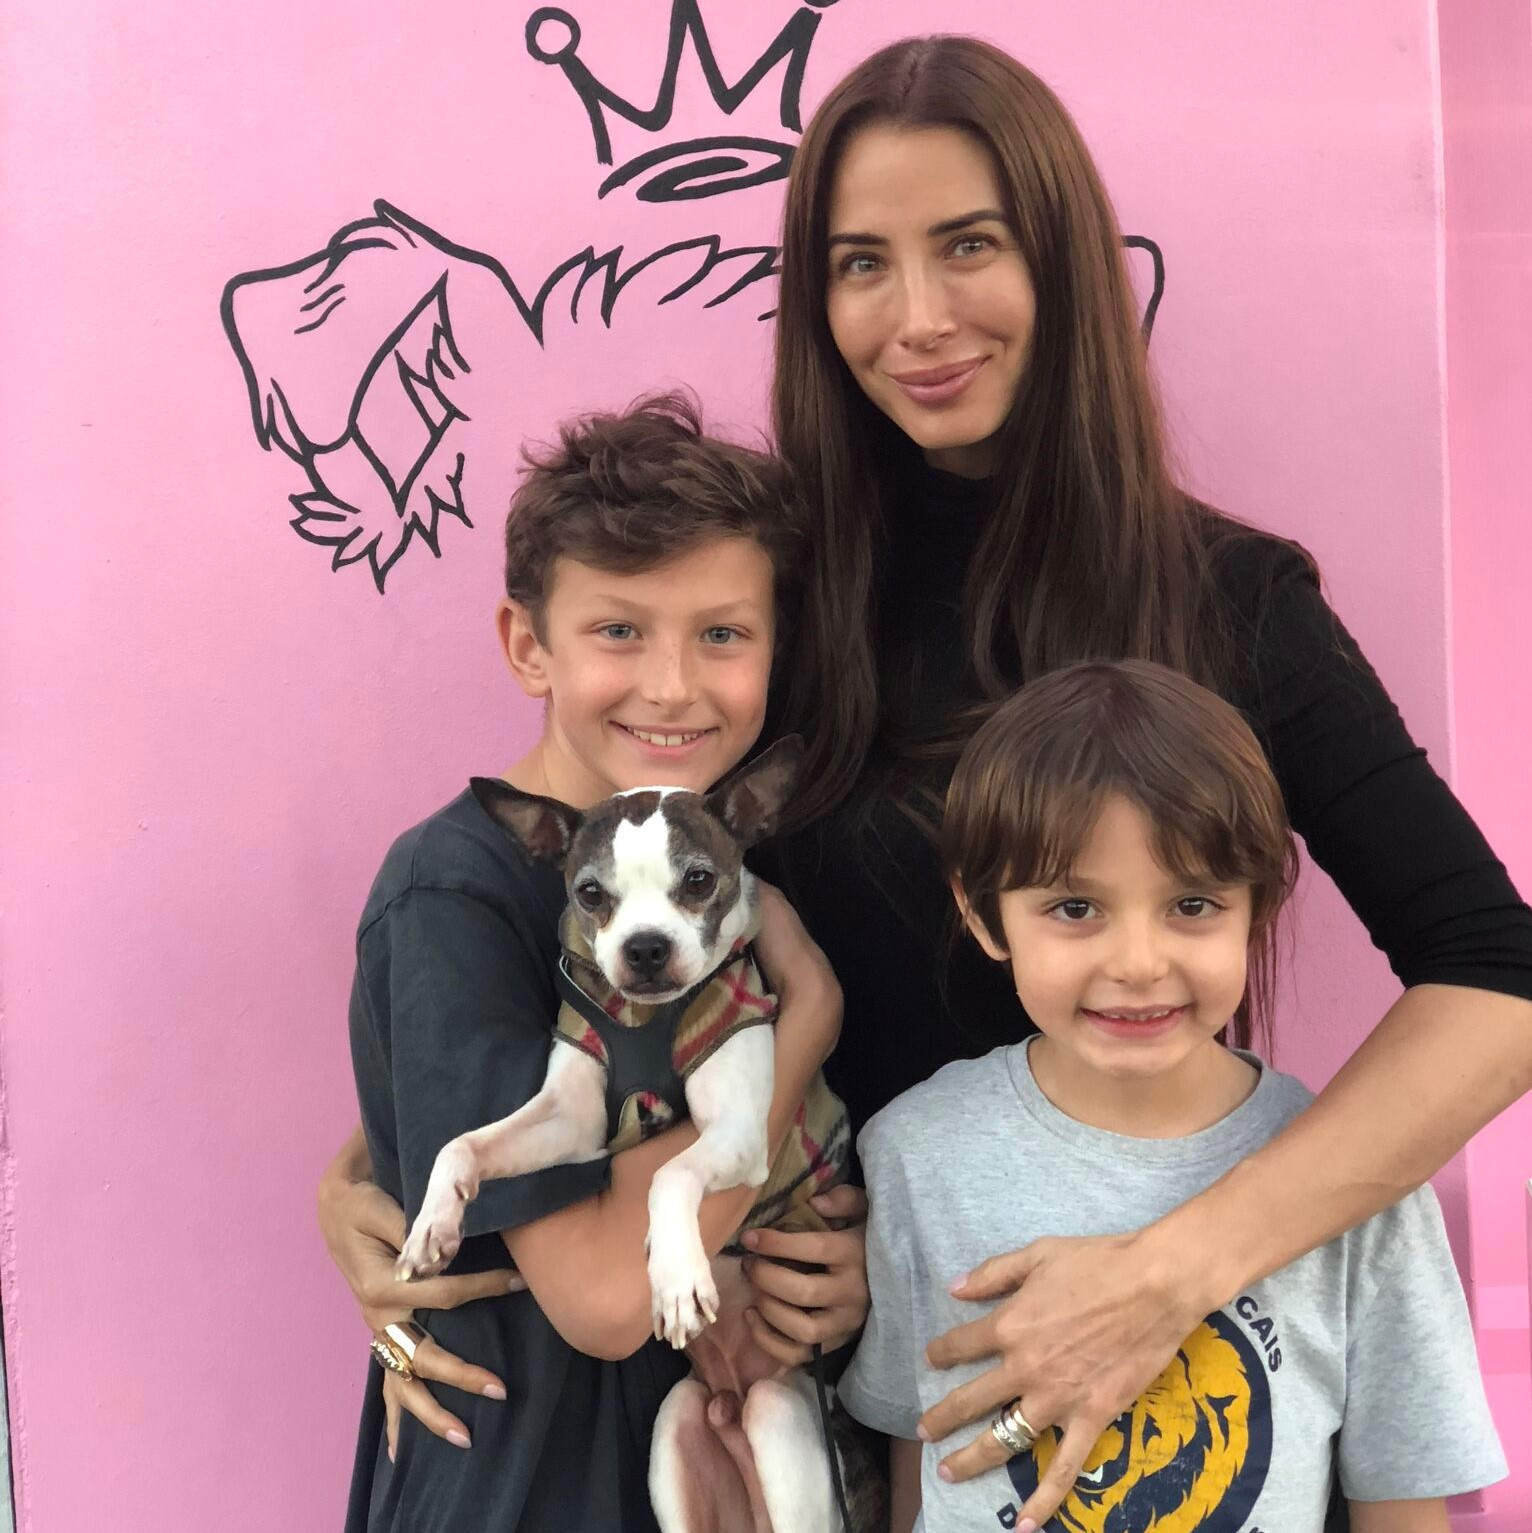 Bruno Vanderpump has found his forever home! Bruno was full of life and spunk, and was constantly around his best friends Sadie and Dino. We know you're going to bring you're new family a lot of laughs and love! We love you Bruno!